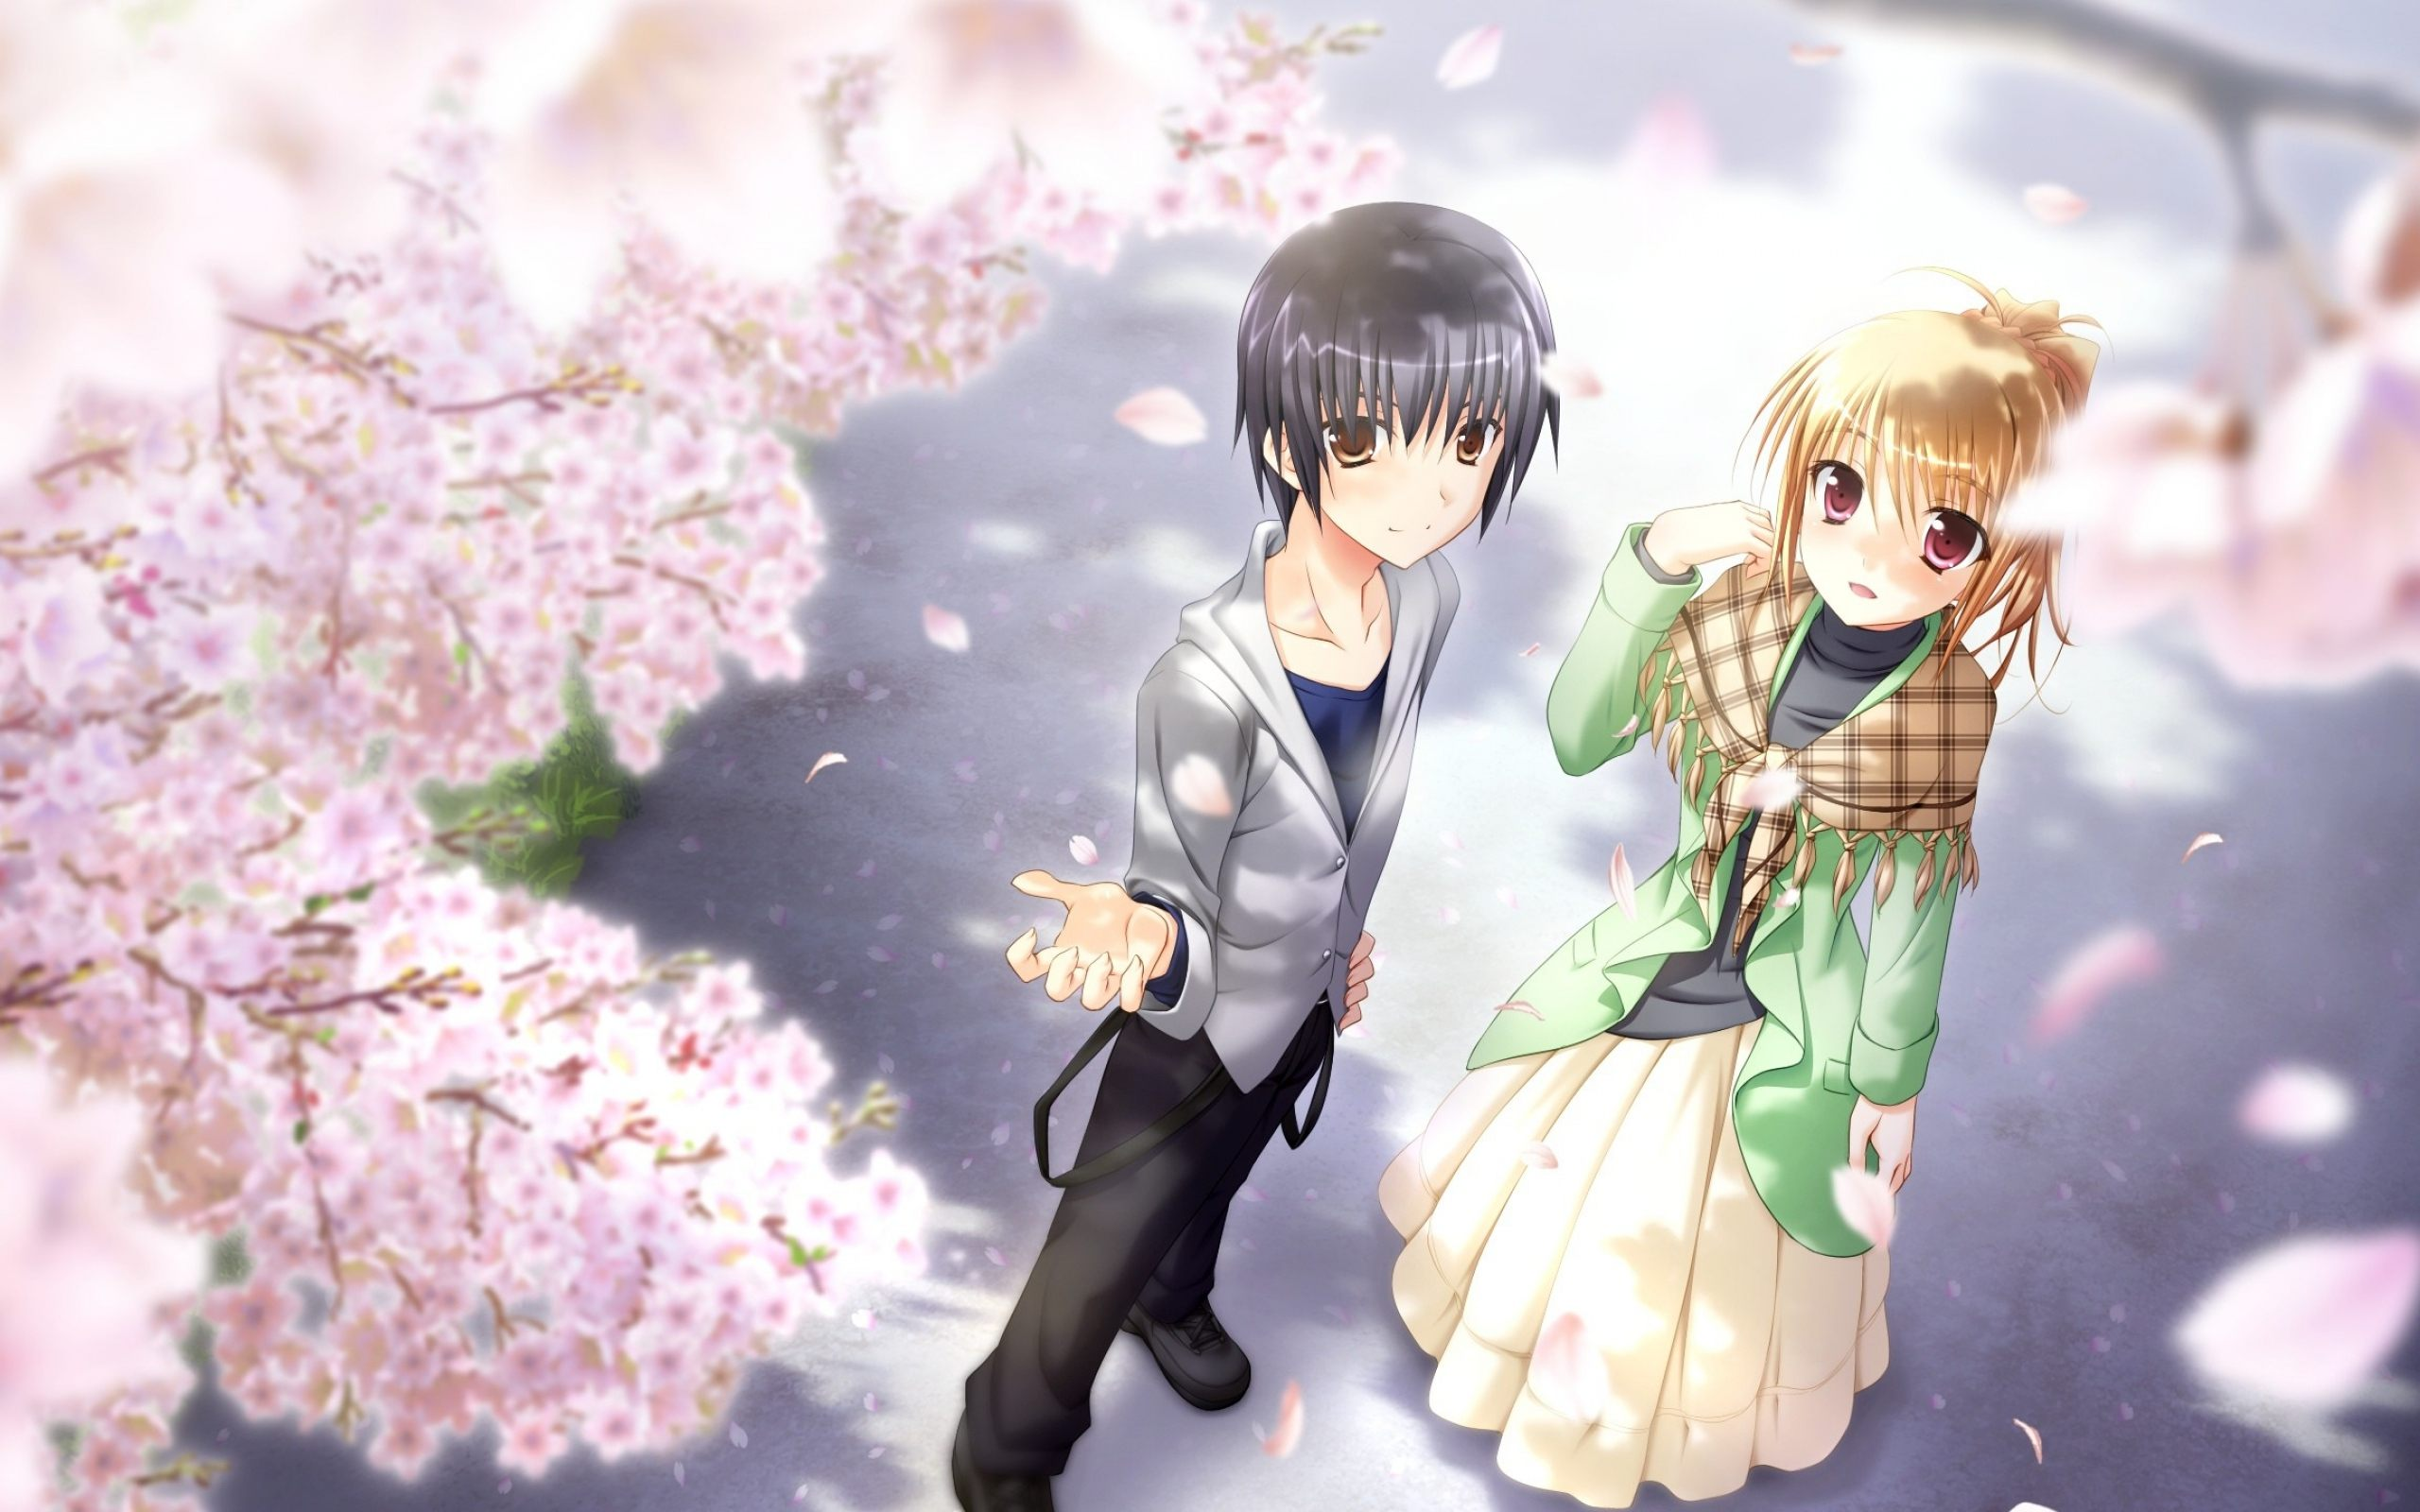 Pictures Cute Couple In Hd: Wallpaper Anime Couple